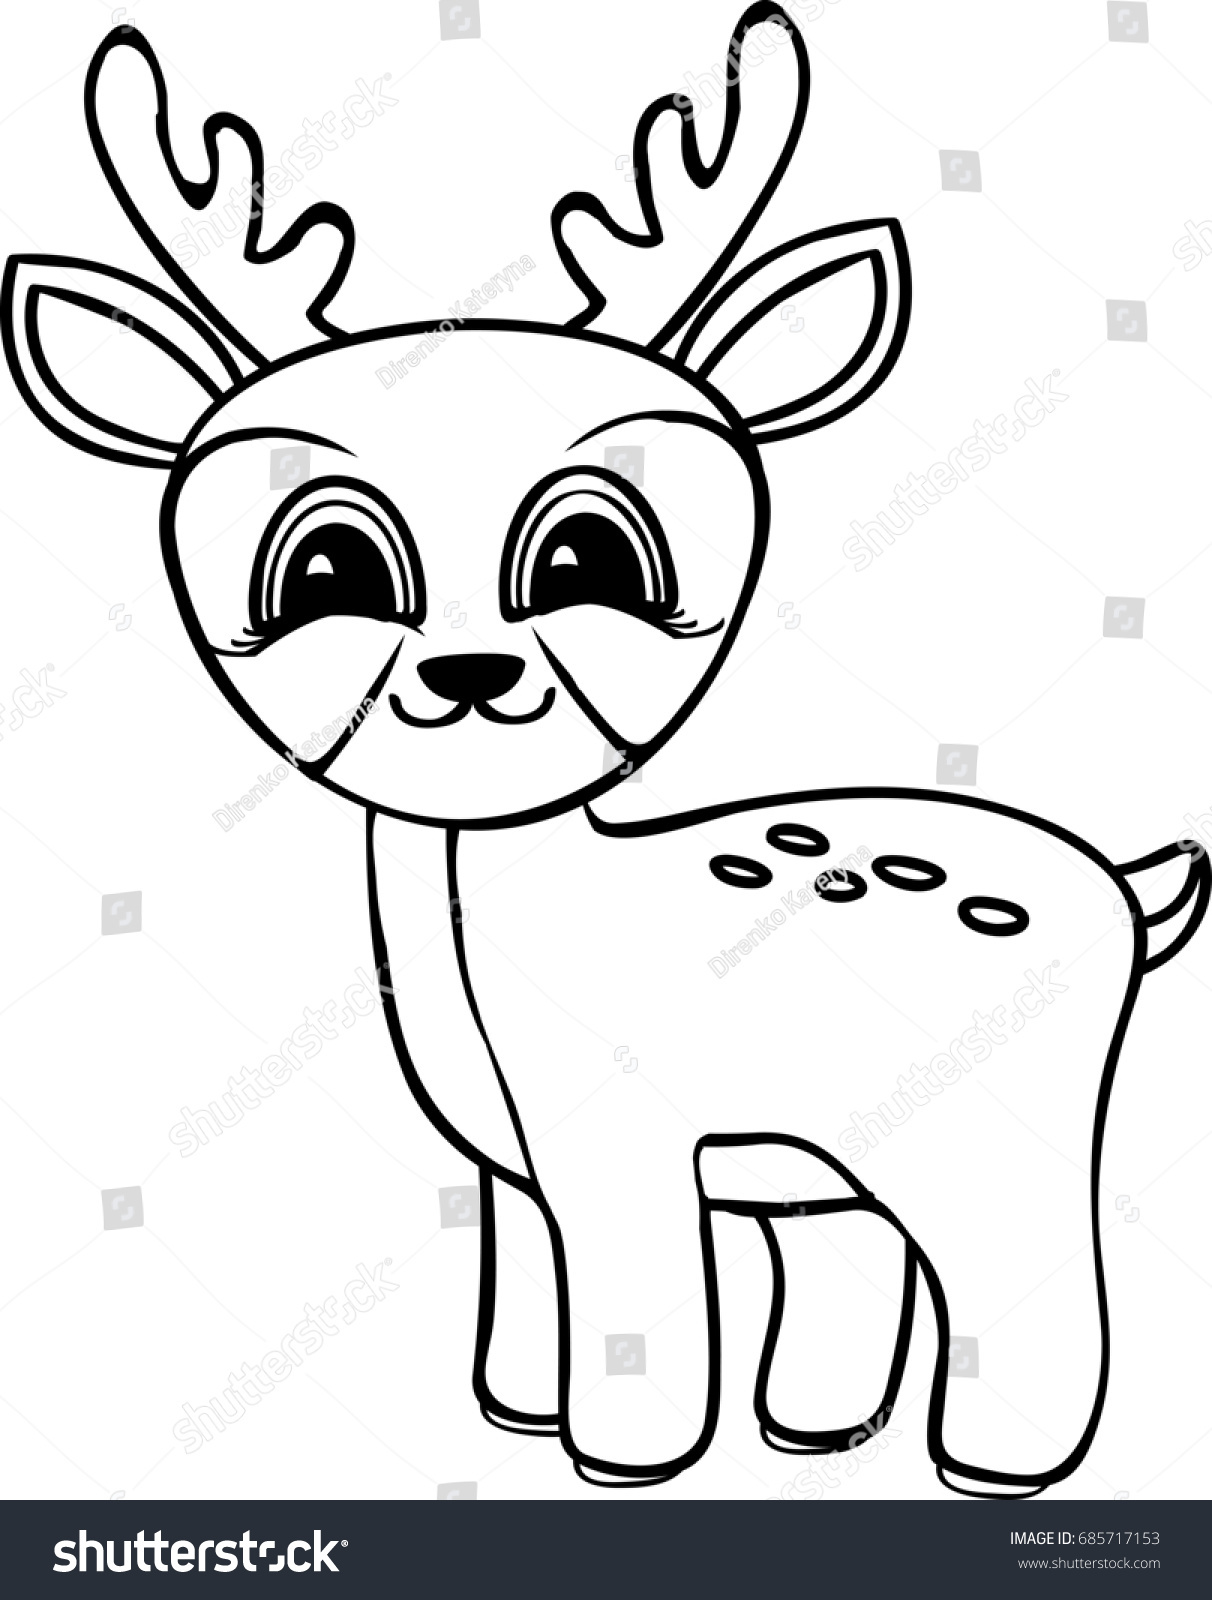 Funny Cartoon Baby Deer Coloring Pages Stock Illustration 685717153 ...